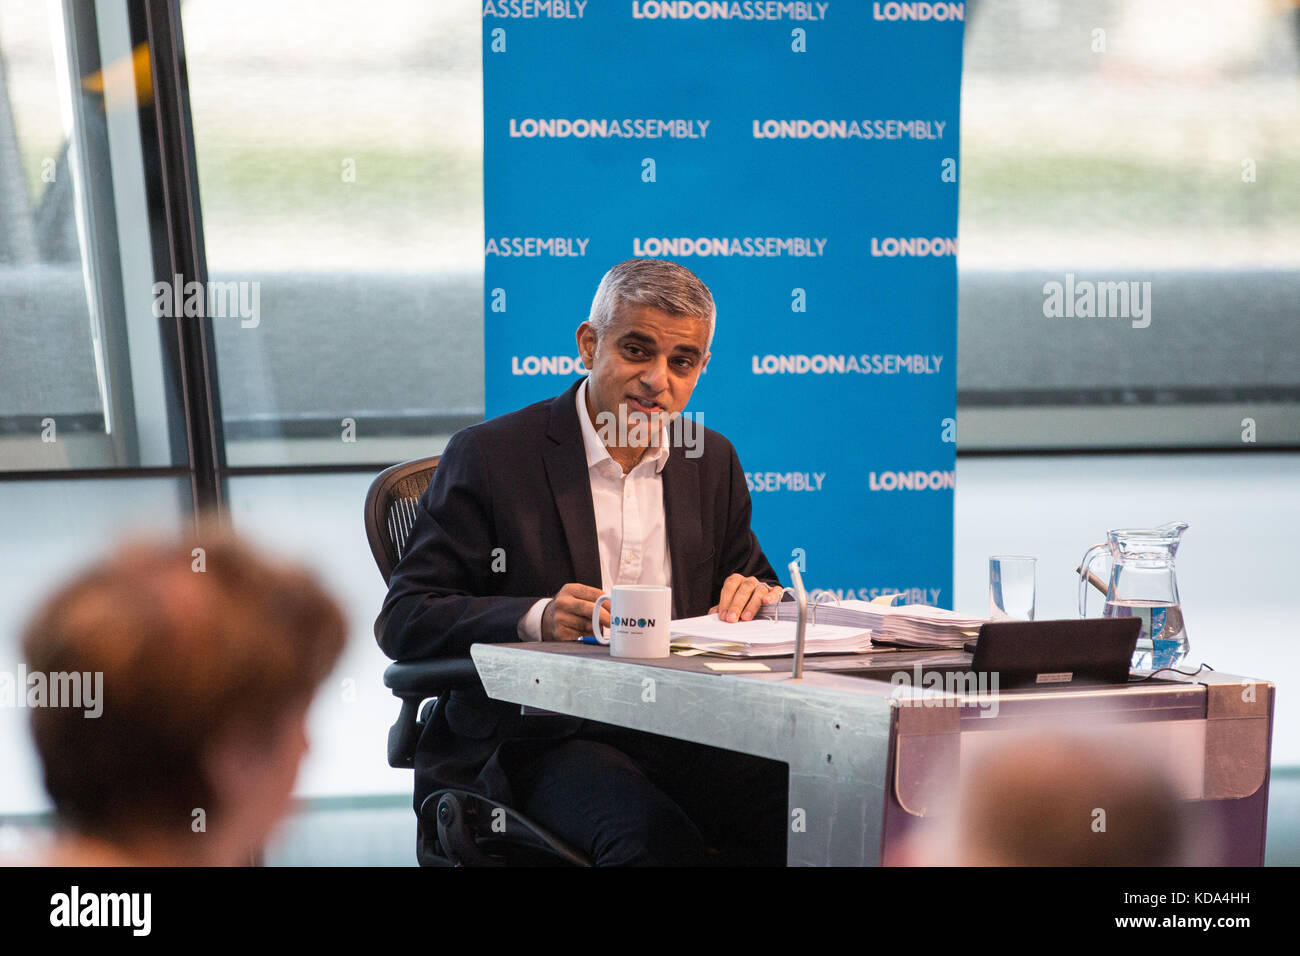 London, UK. 12th Oct, 2017. Mayor of London Sadiq Khan answers a question from Dr Onkar Sahota during Mayor's - Stock Image